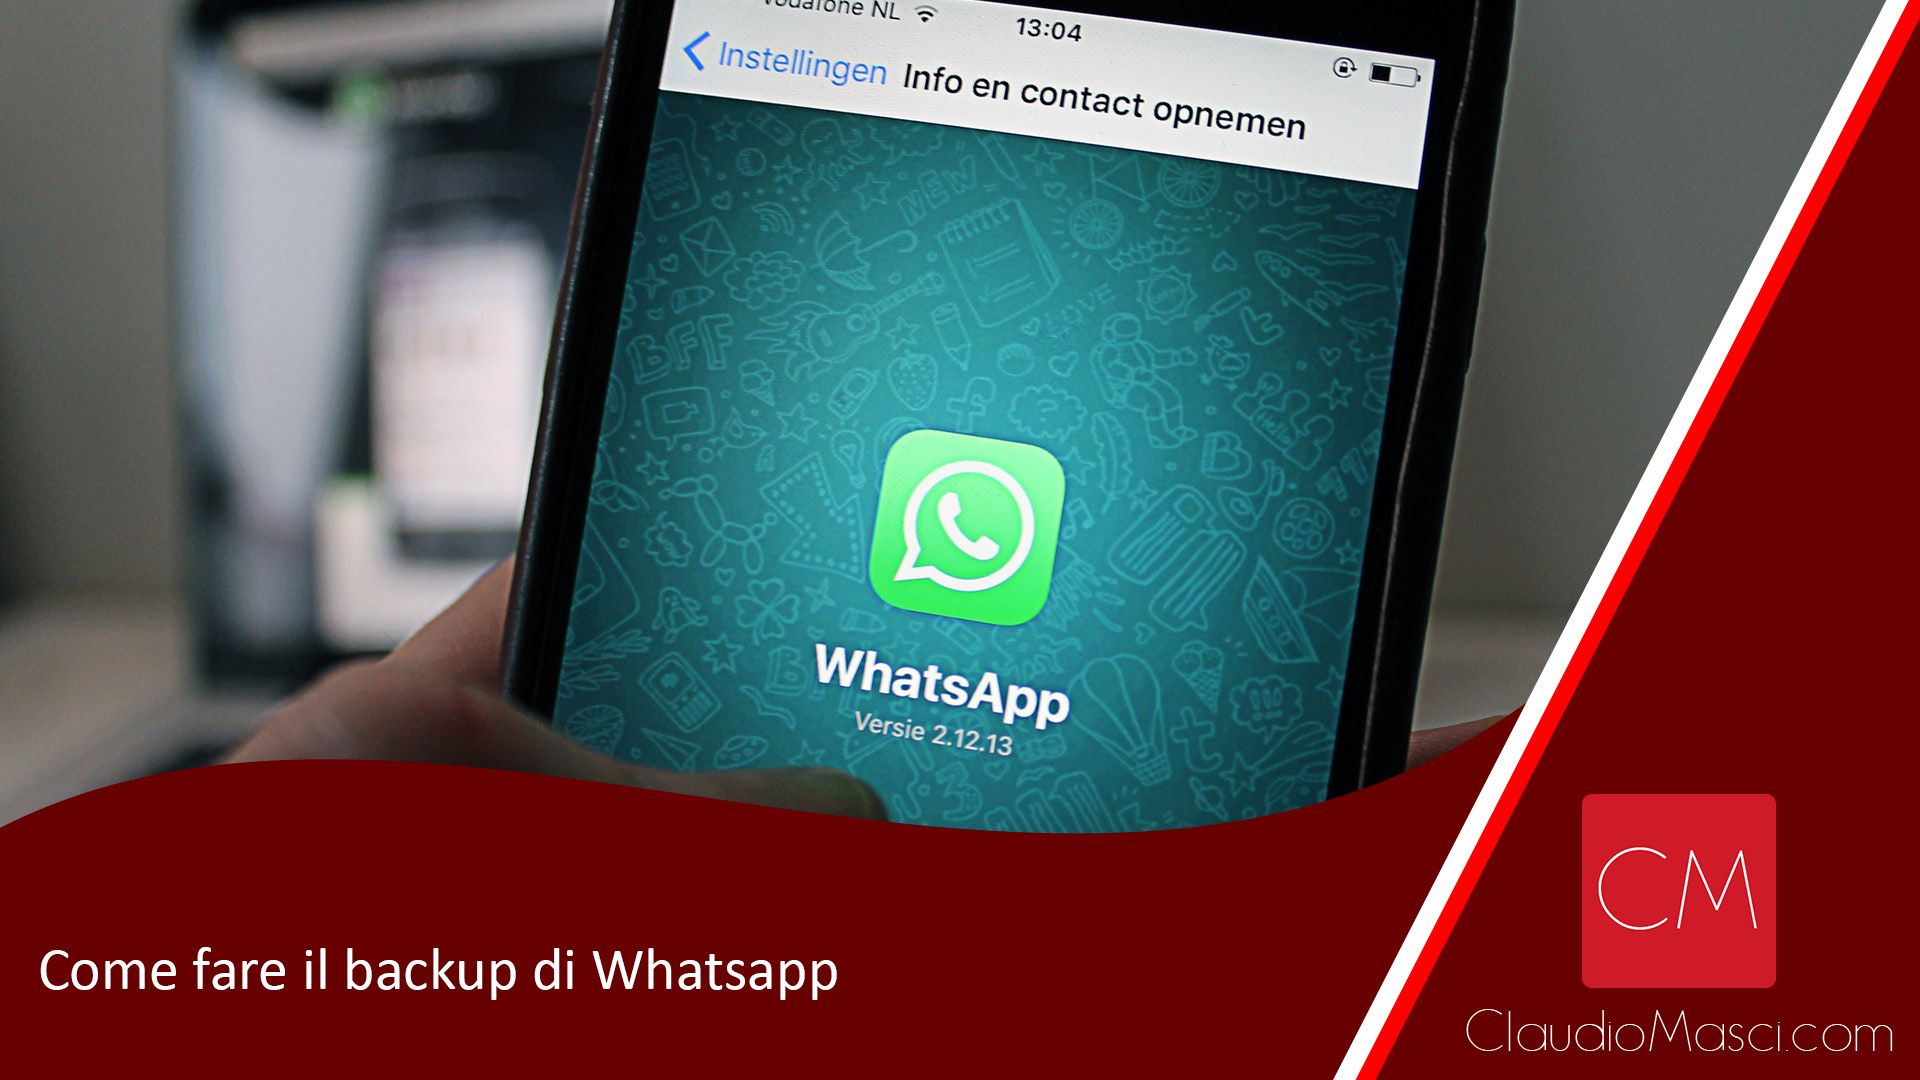 Come fare il backup di Whatsapp